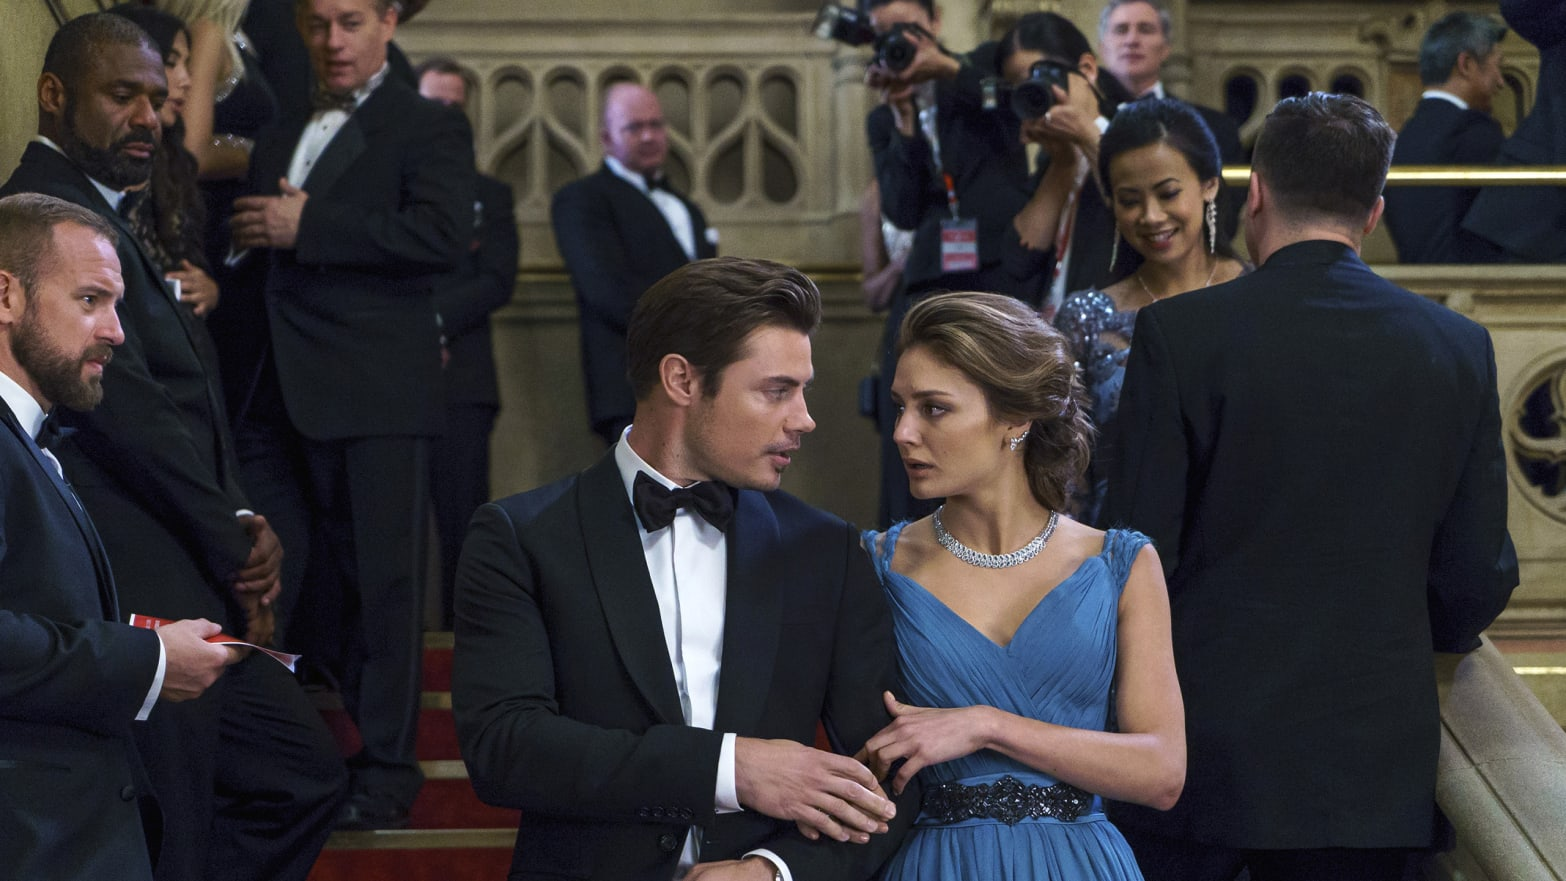 Is 'The Arrangement' Really About Tom Cruise's Alleged Contract